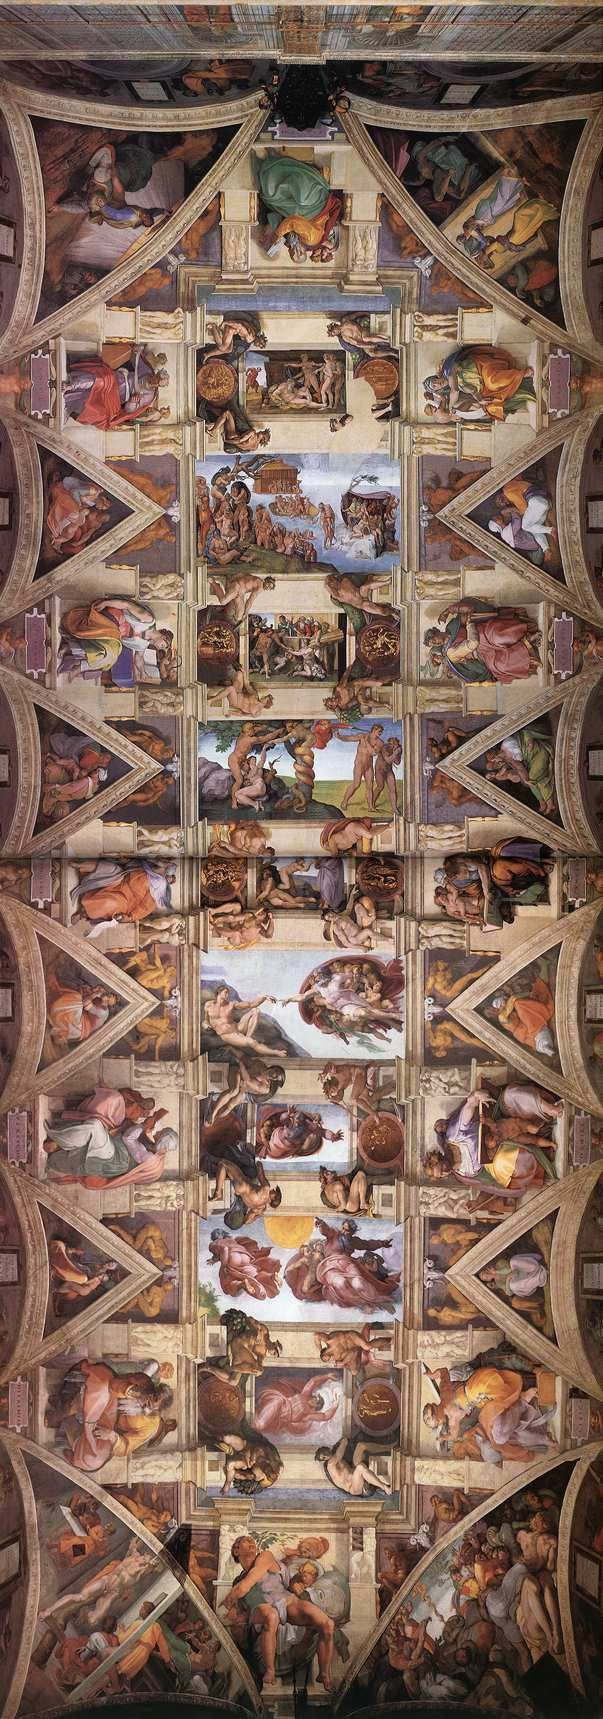 On Painting the Sistine Chapel Ceiling  To Giovanni da Pistoia, July 1510  by Michelangelo Buonarroti    I've grown a goiter by dwelling in this den -      As cats from stagnan